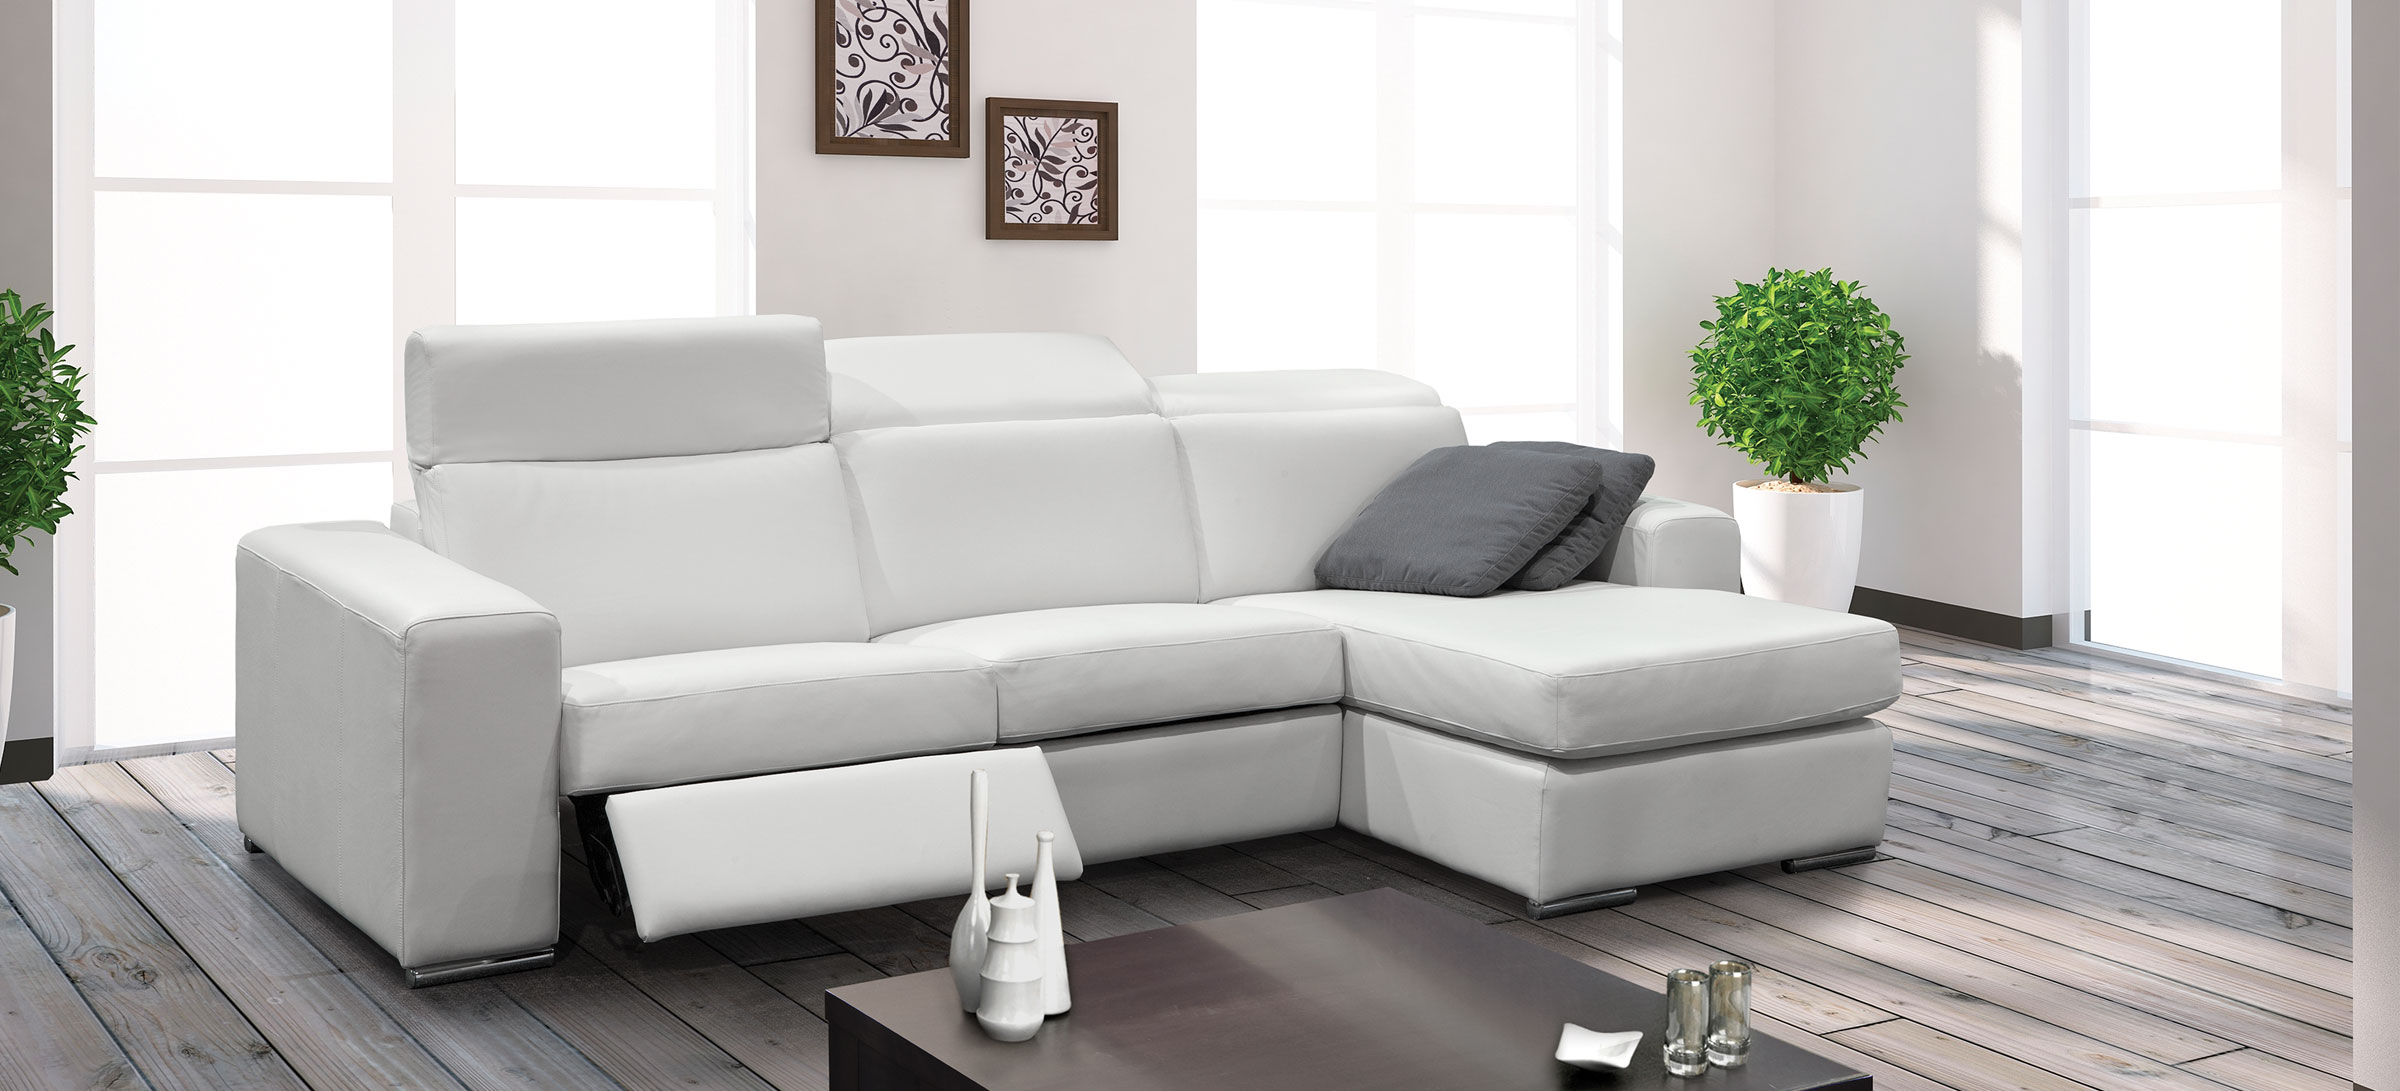 Sofa a vendre gatineau for Divan jc perreault